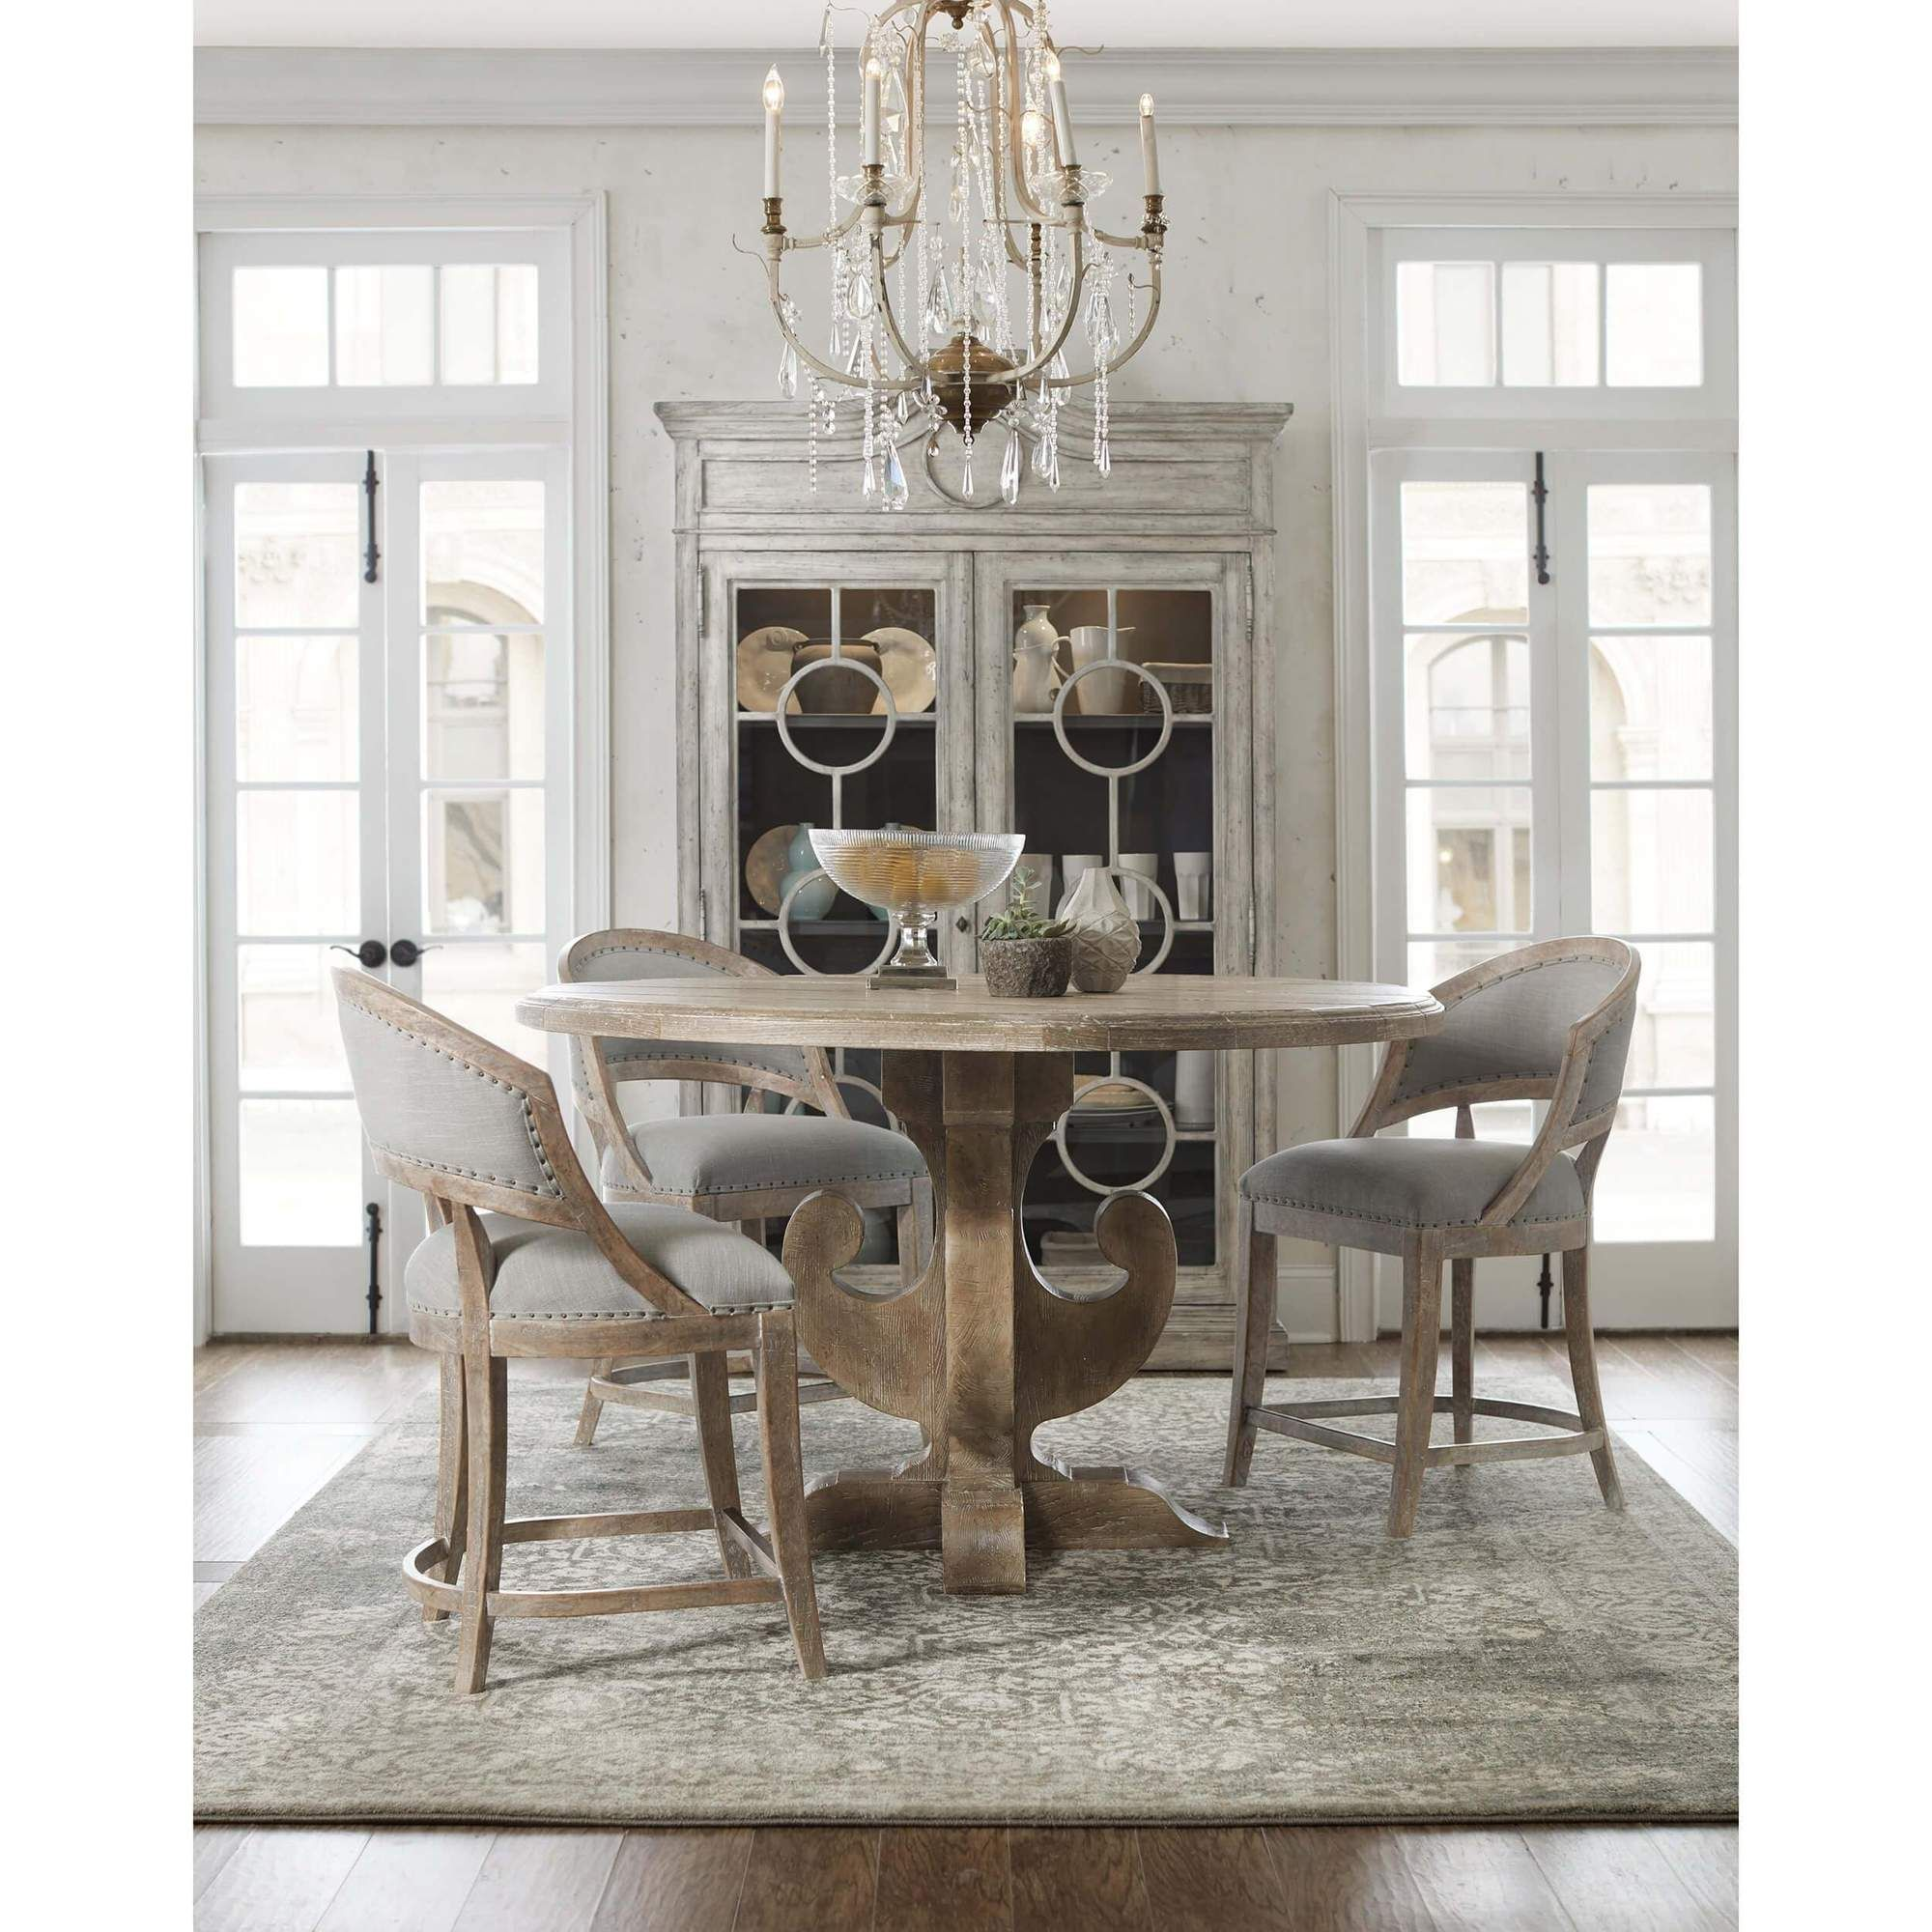 Boheme Ascension Wood Round Dining Table Round Dining Room Table Round Wood Dining Table Round Dining Room